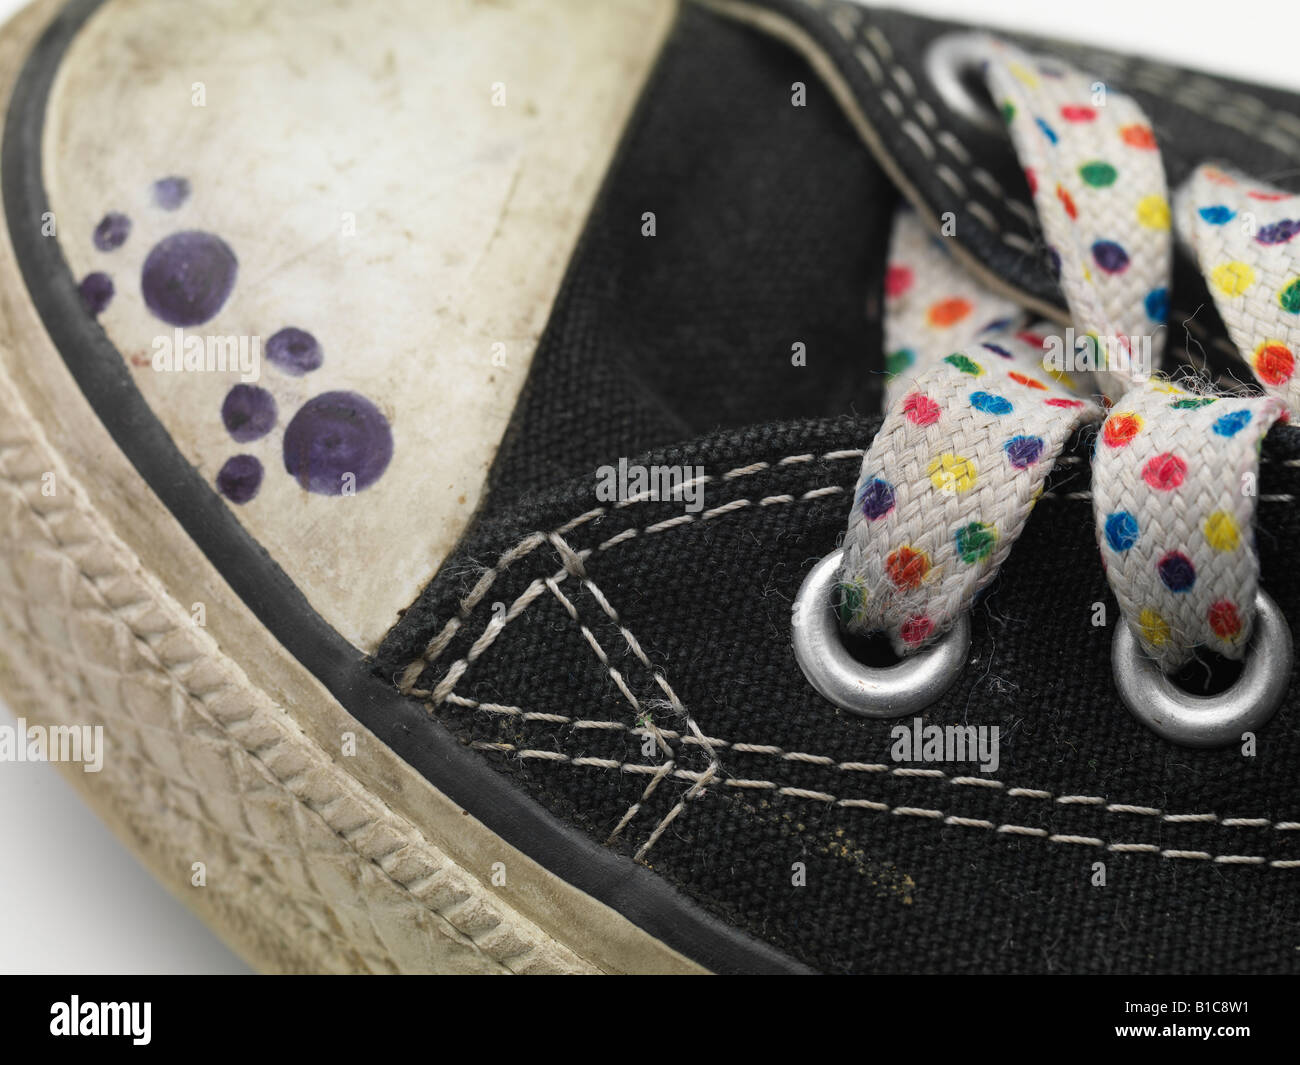 Converse All Star High Latex Back Basketball Dirty Lace Shoestring